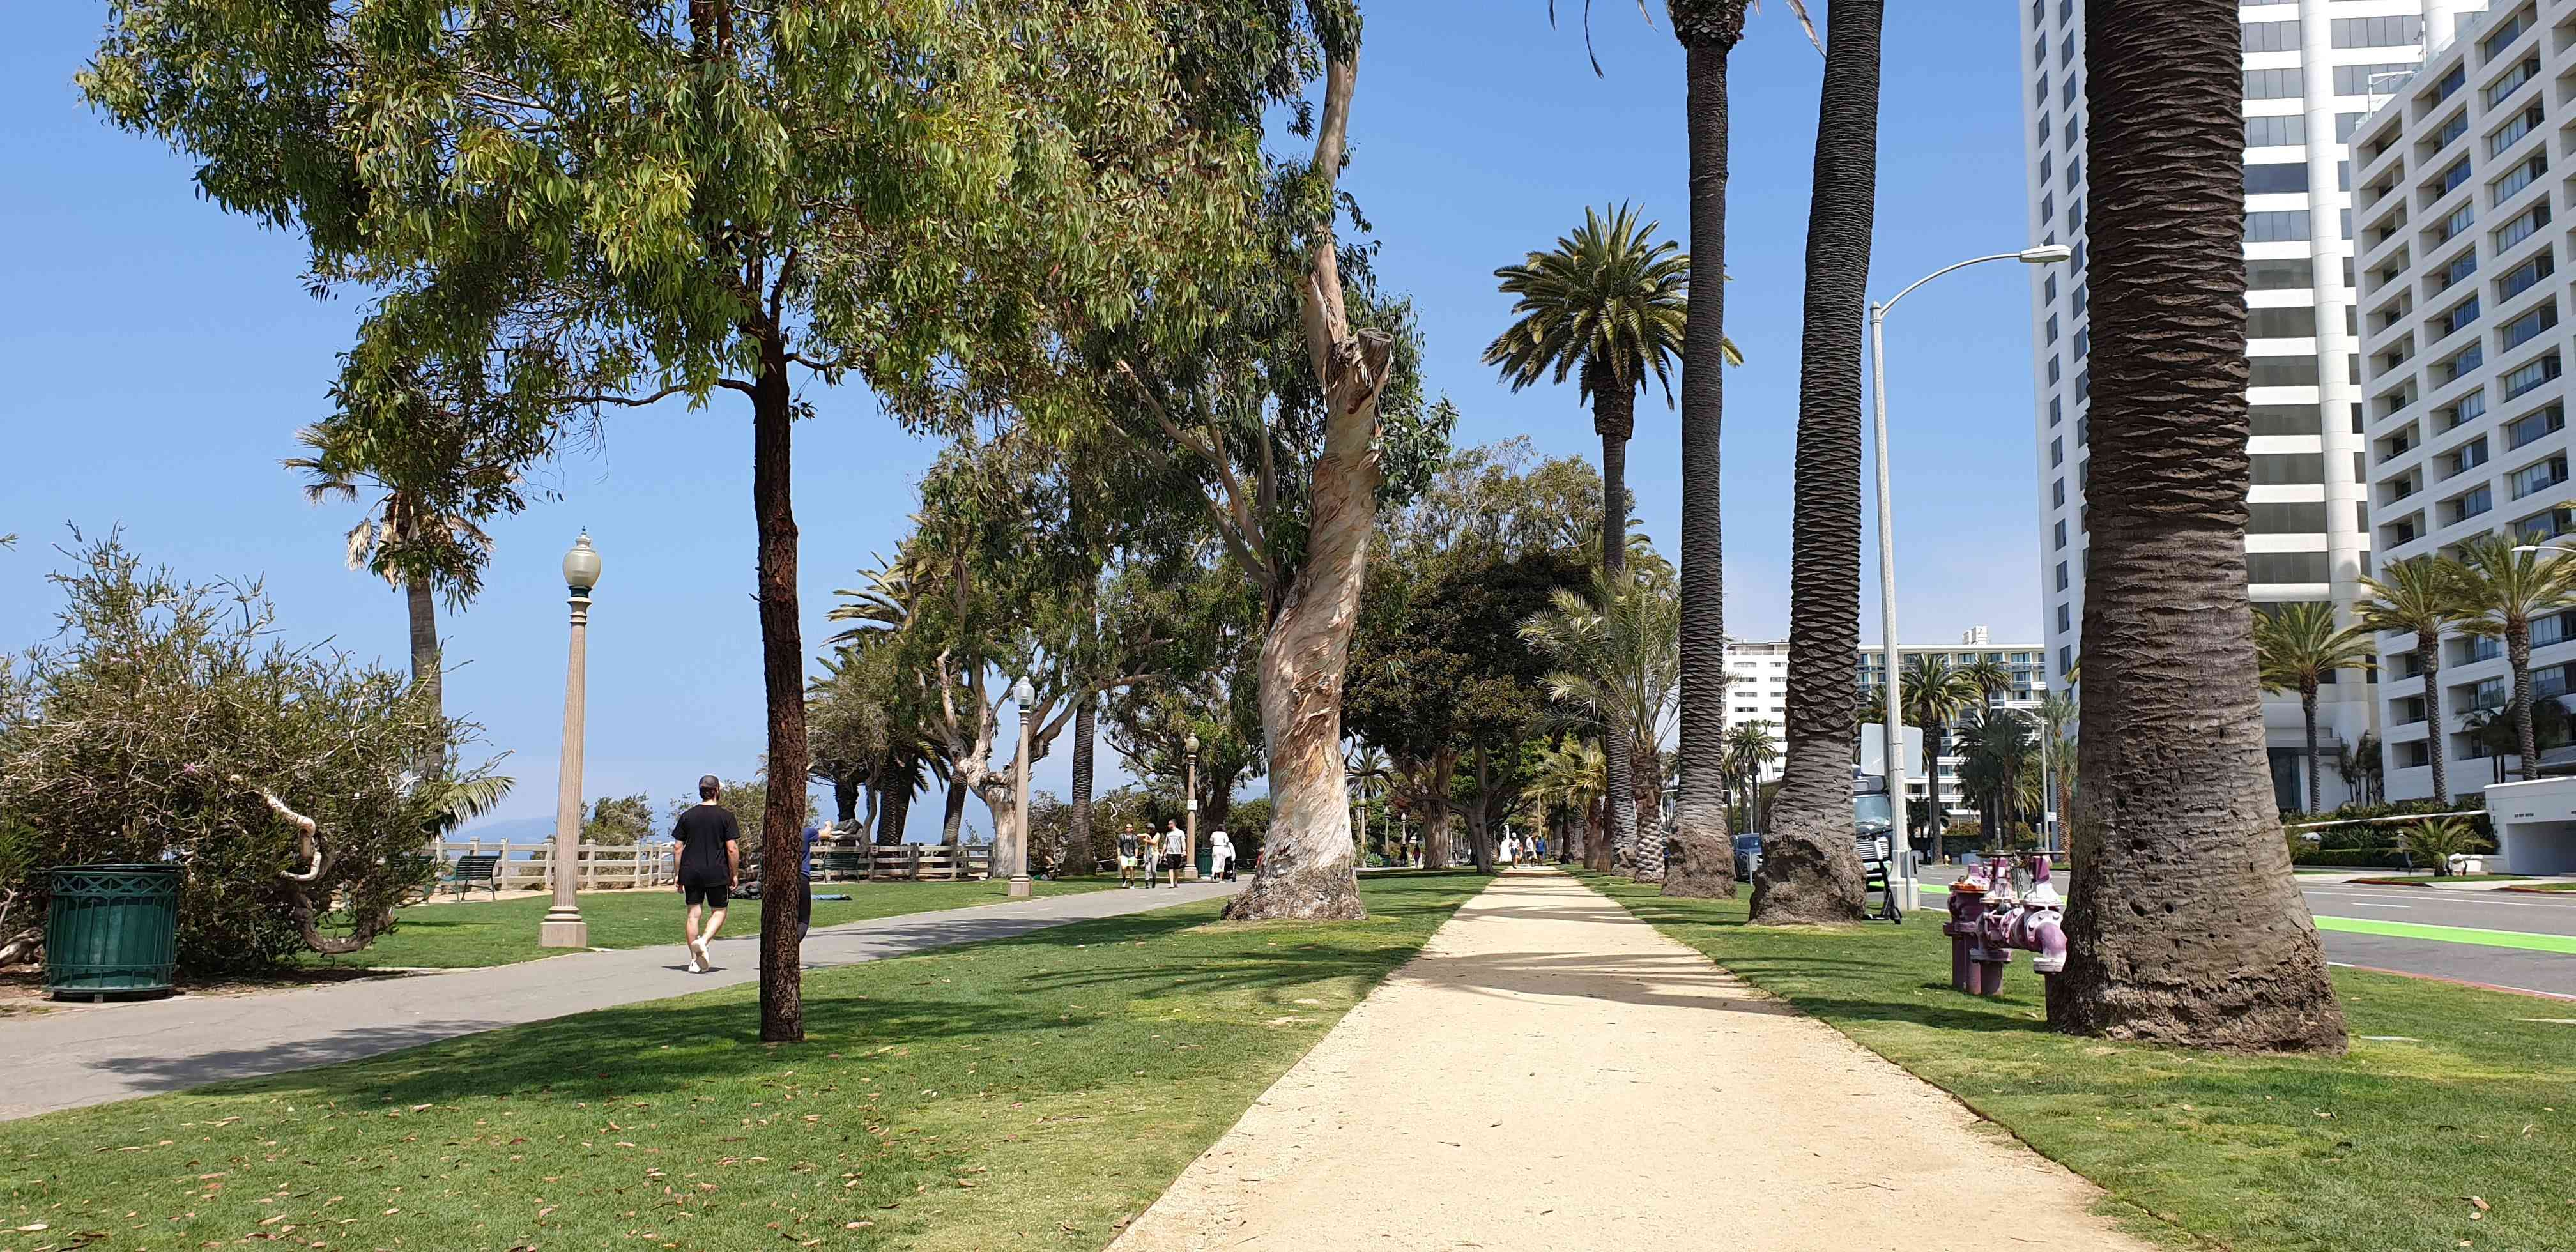 The ocean front park at Santa Monica LA